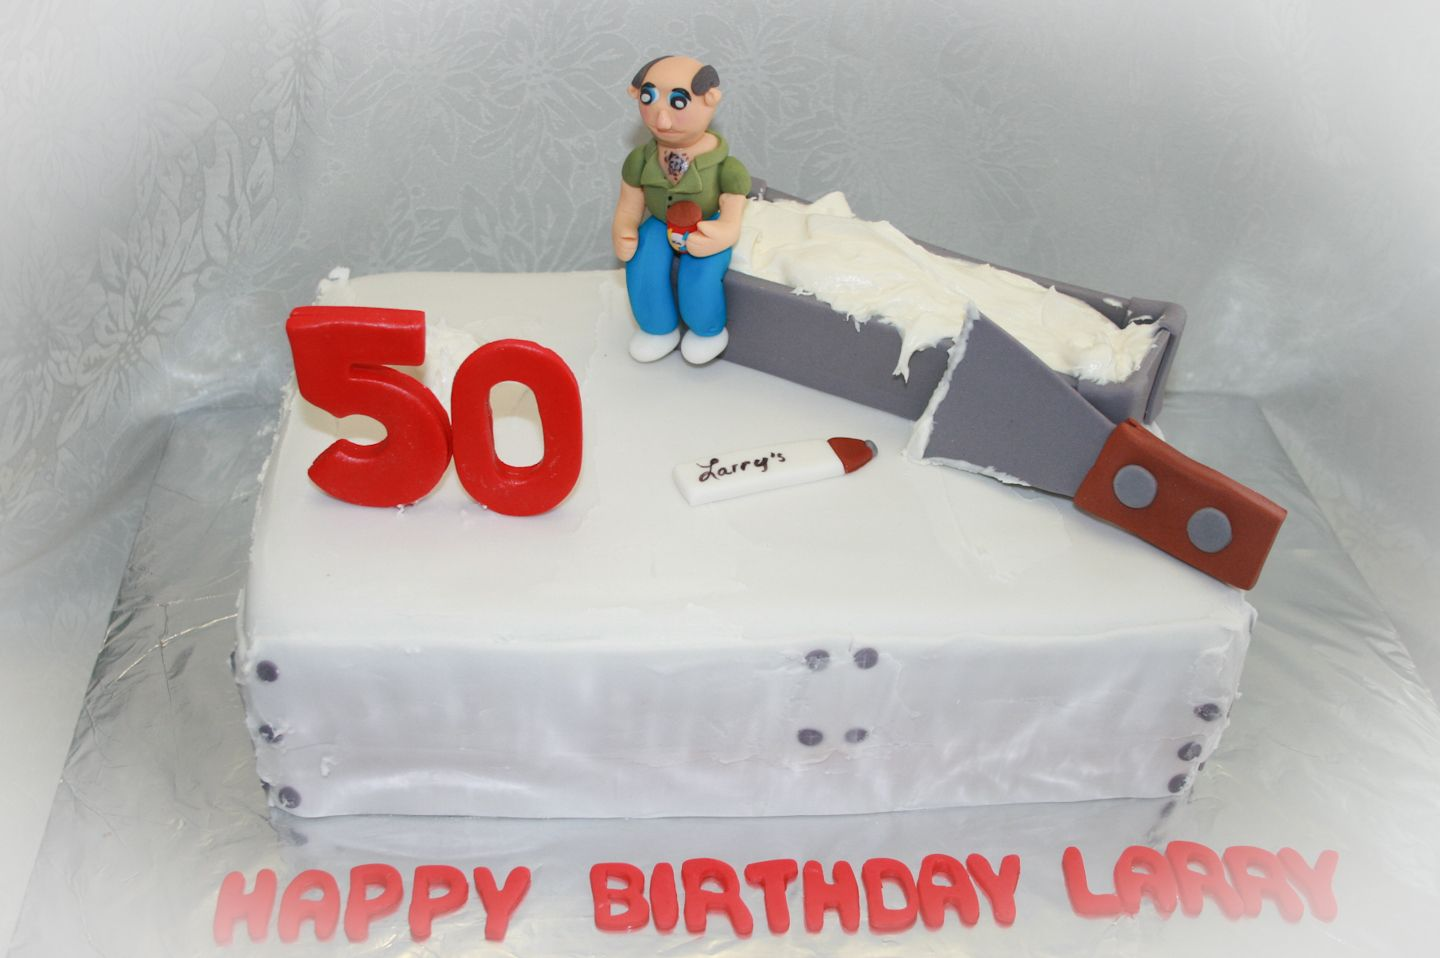 Drywall Taper Mudder Cake Turning 50 Birthday Chocolate Cupcakes